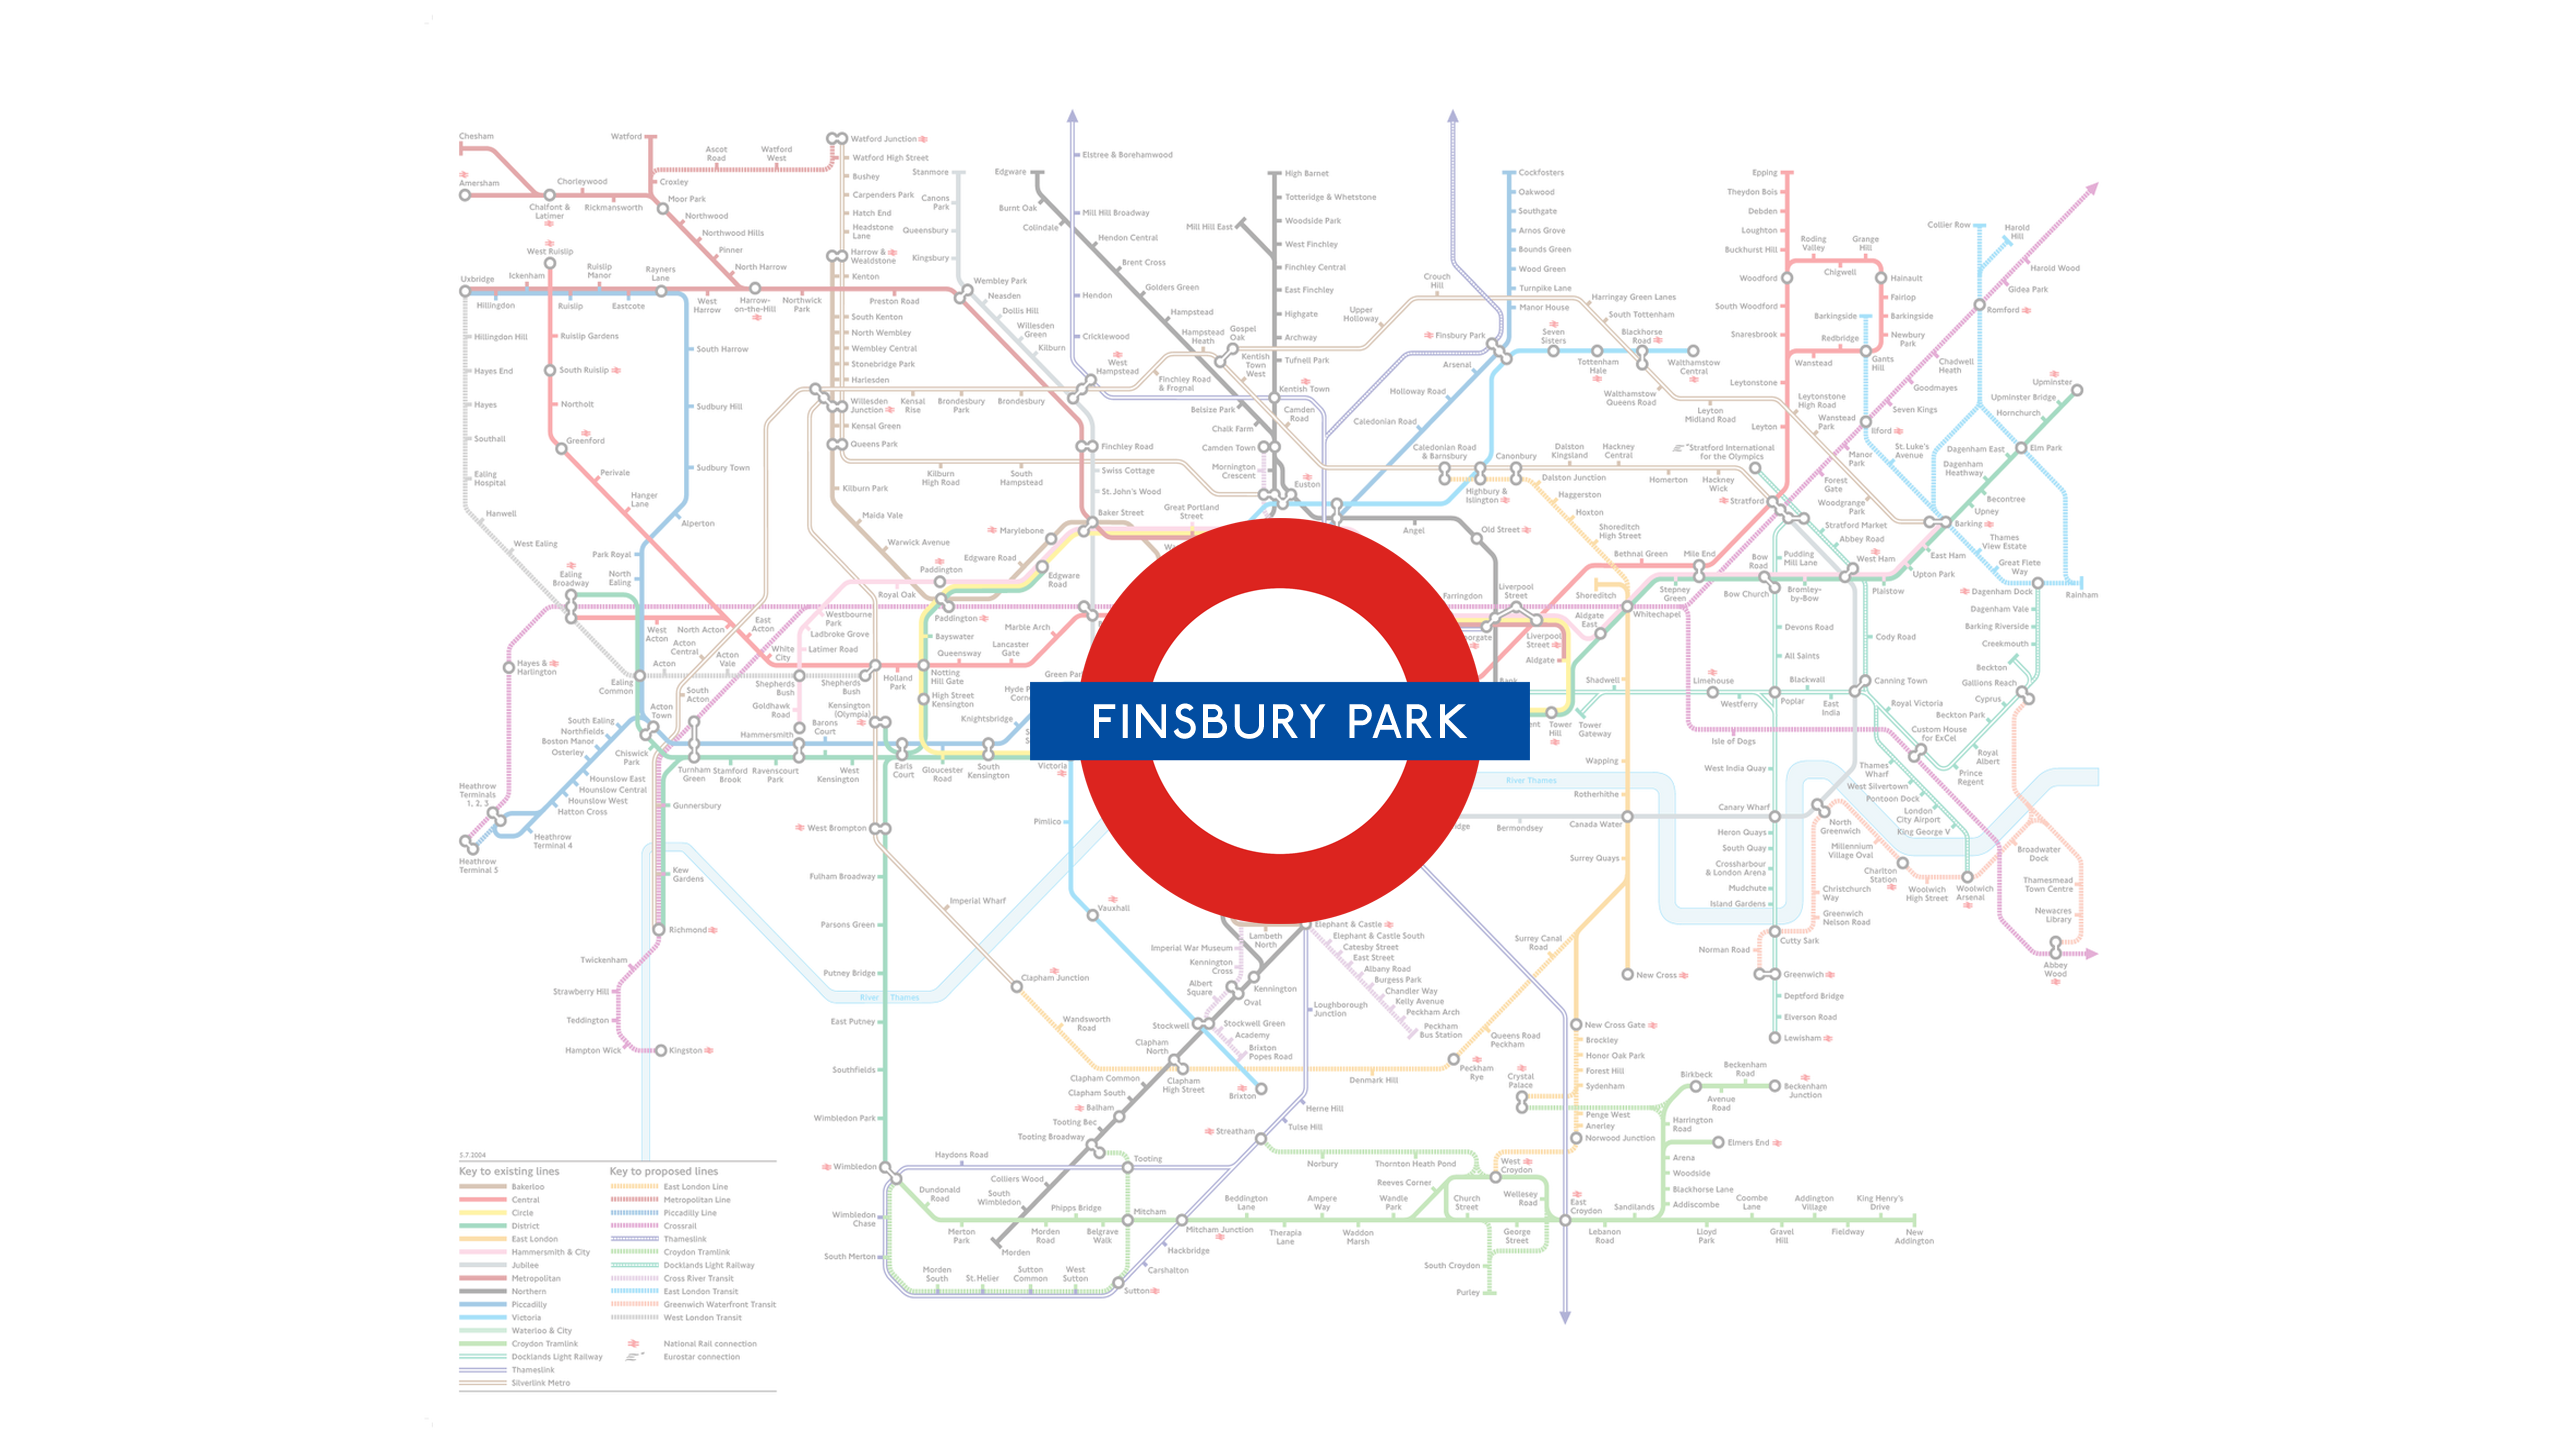 Finsbury Park (Map)